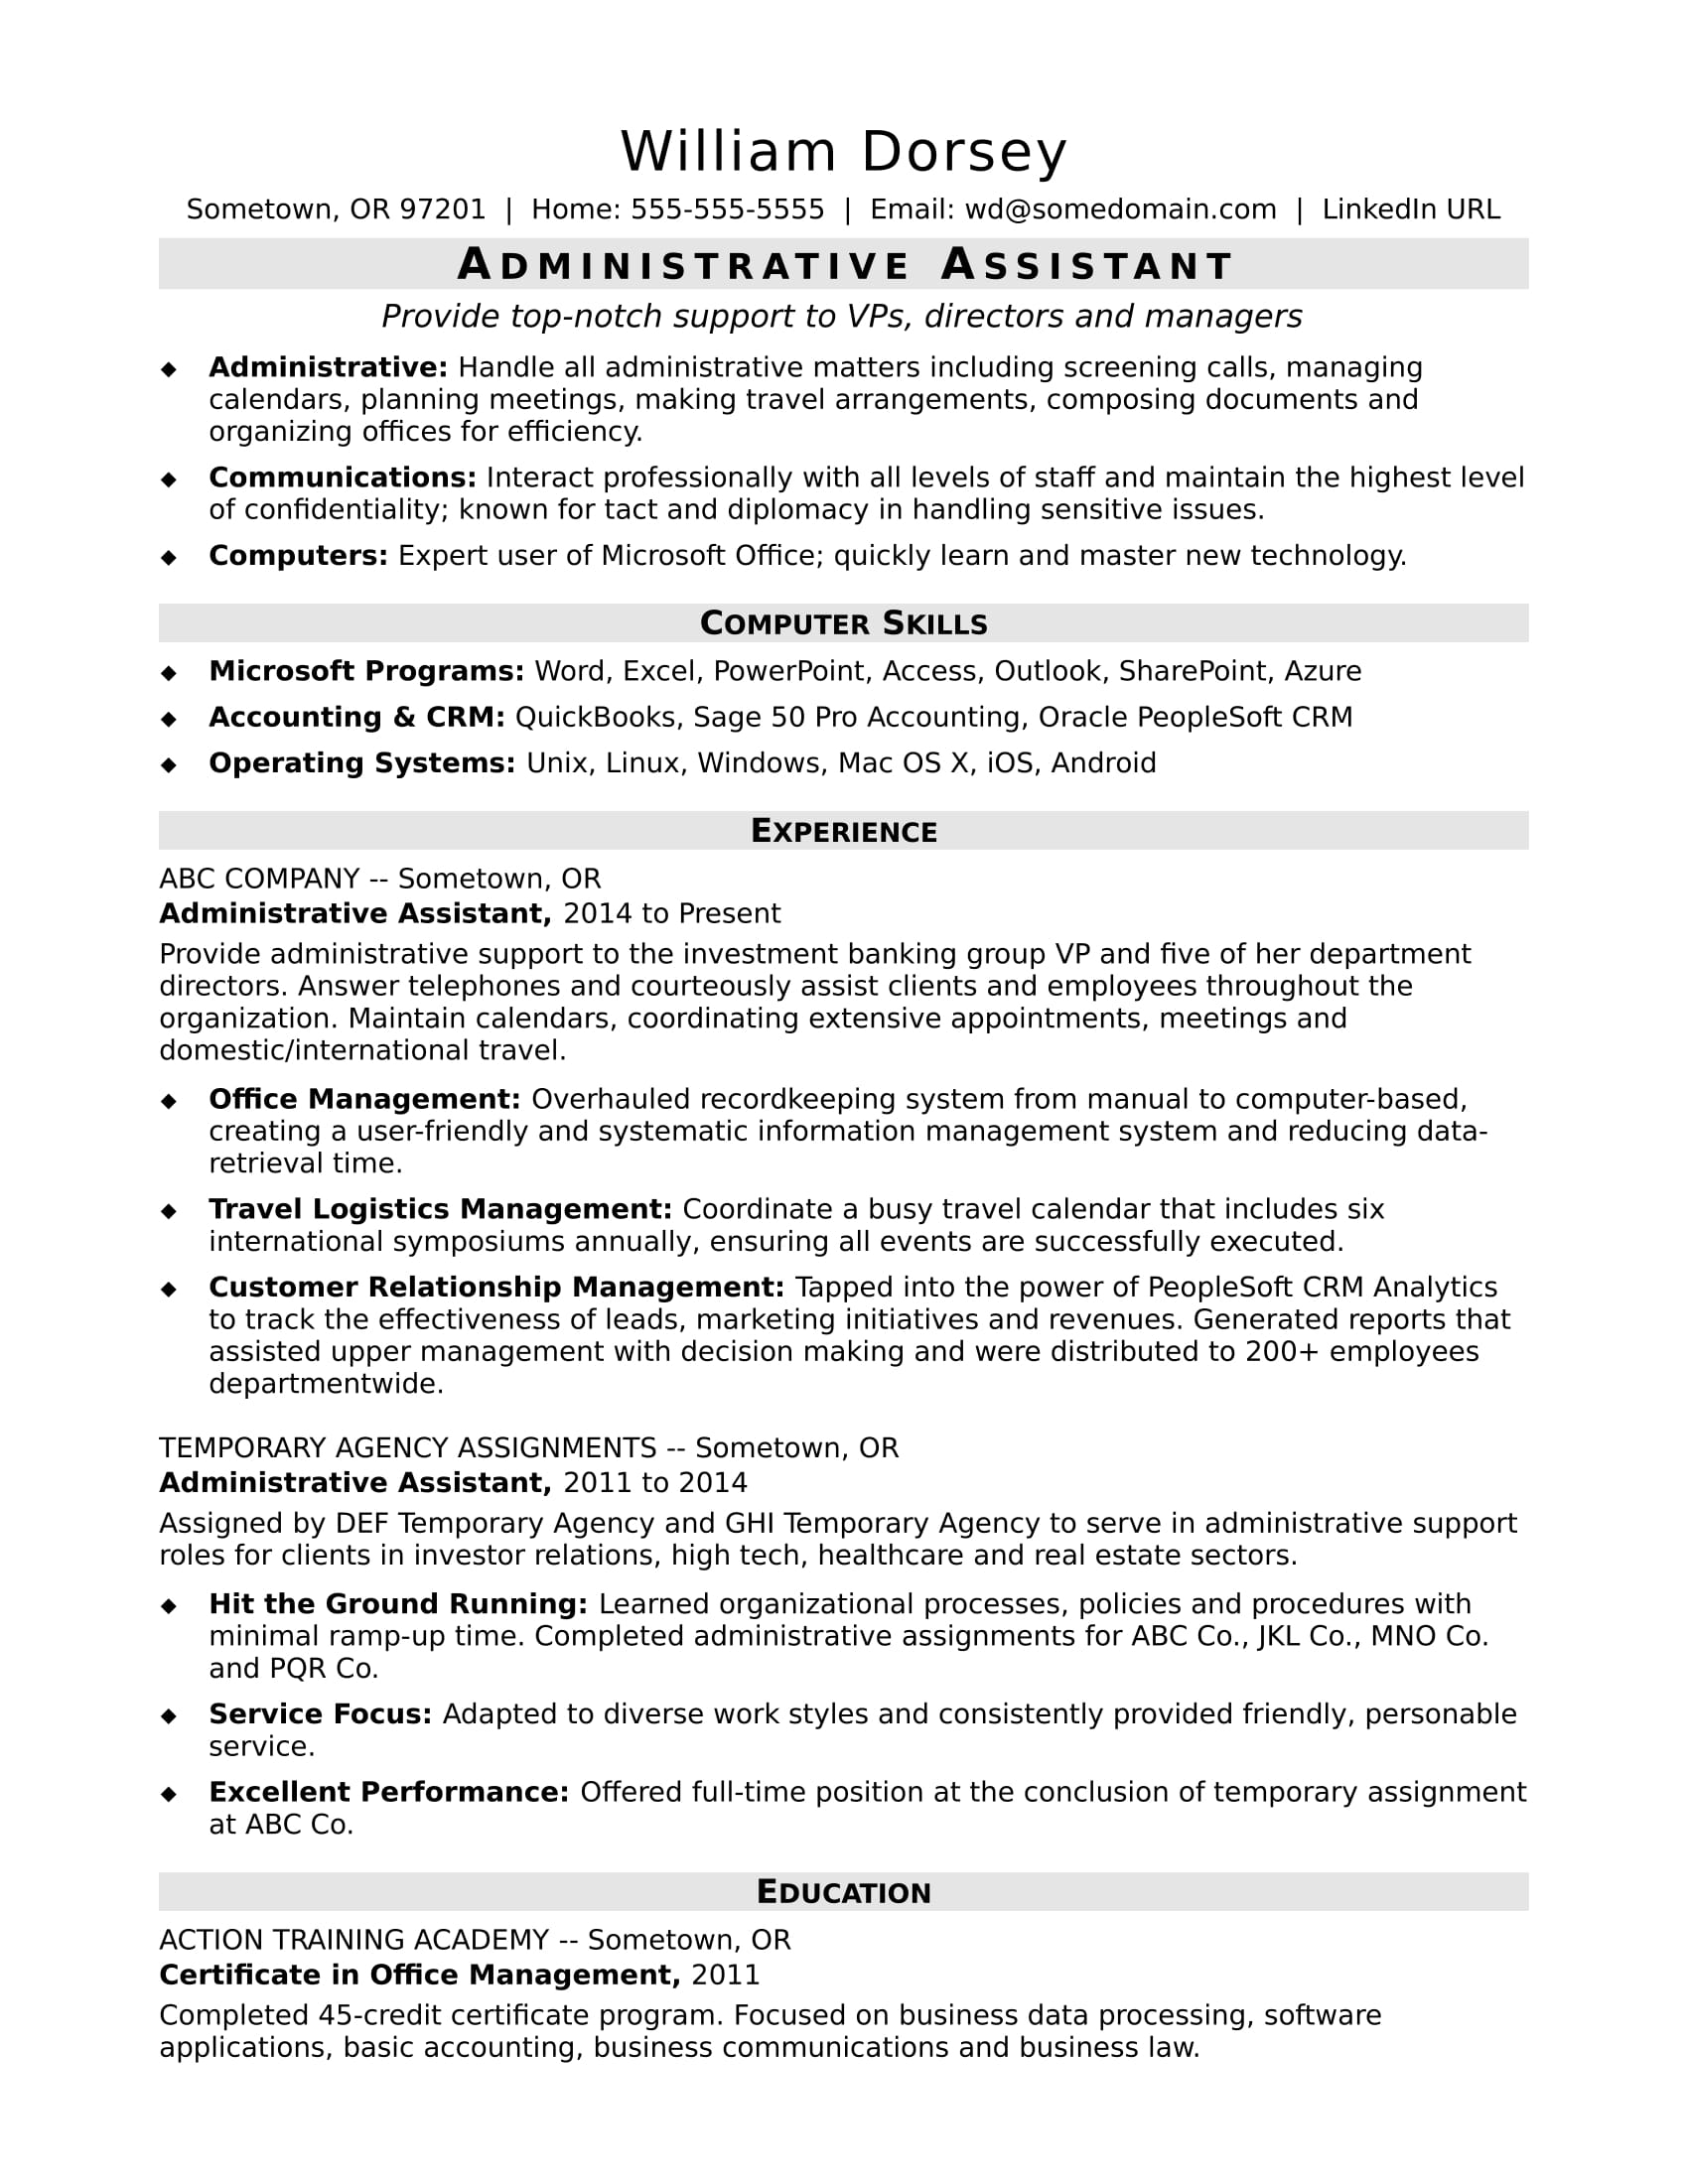 midlevel administrative assistant resume sample monster for office with experience Resume Sample Resume For Office Assistant With Experience